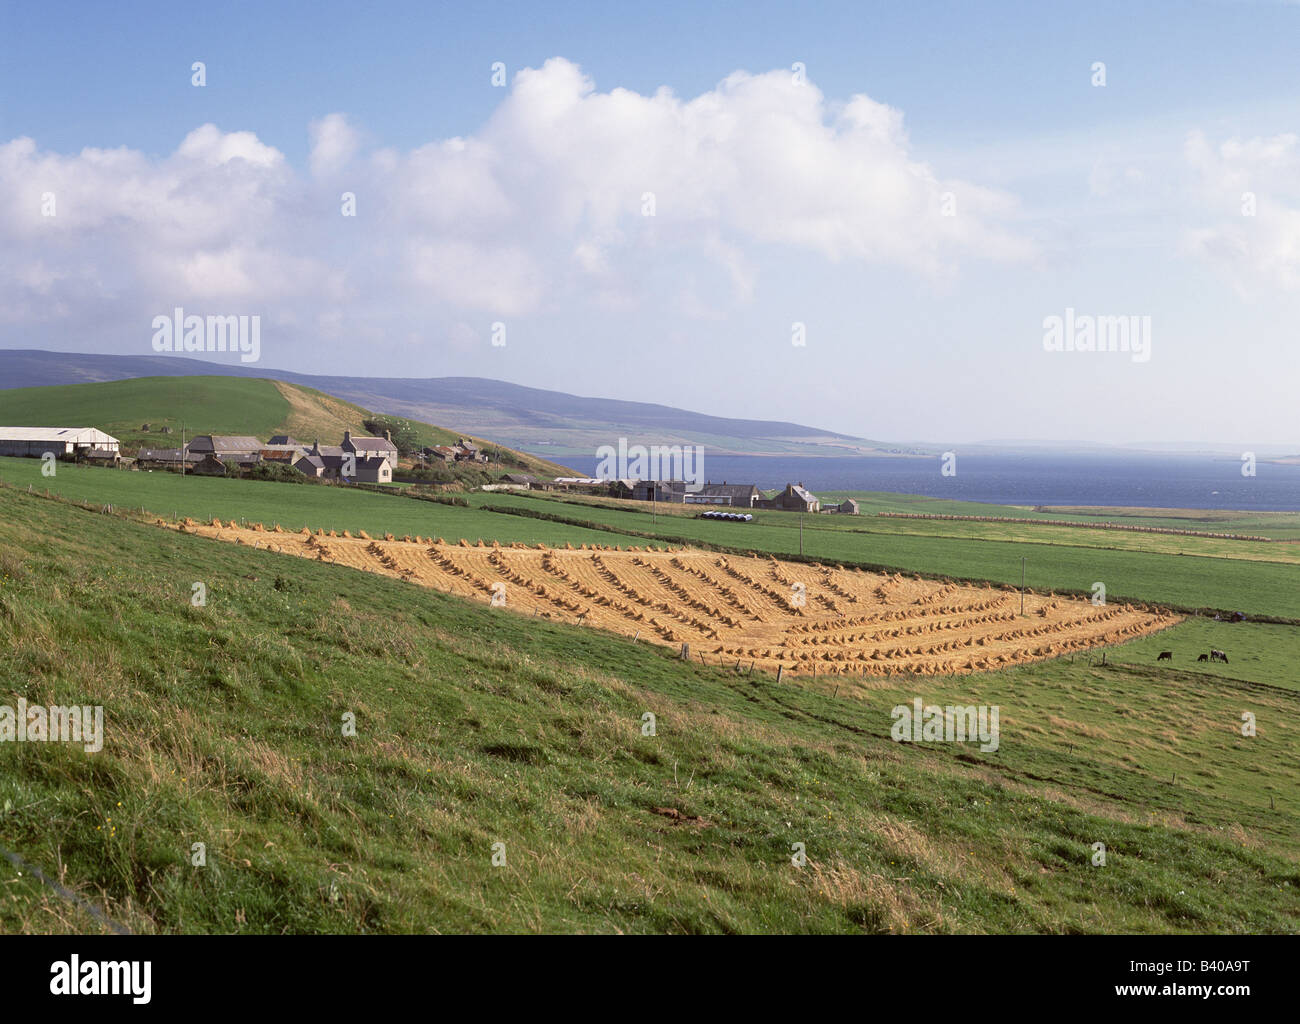 dh  EVIE ORKNEY Farmhouse stacked harvested hayfield rural farming Rousay island Stock Photo